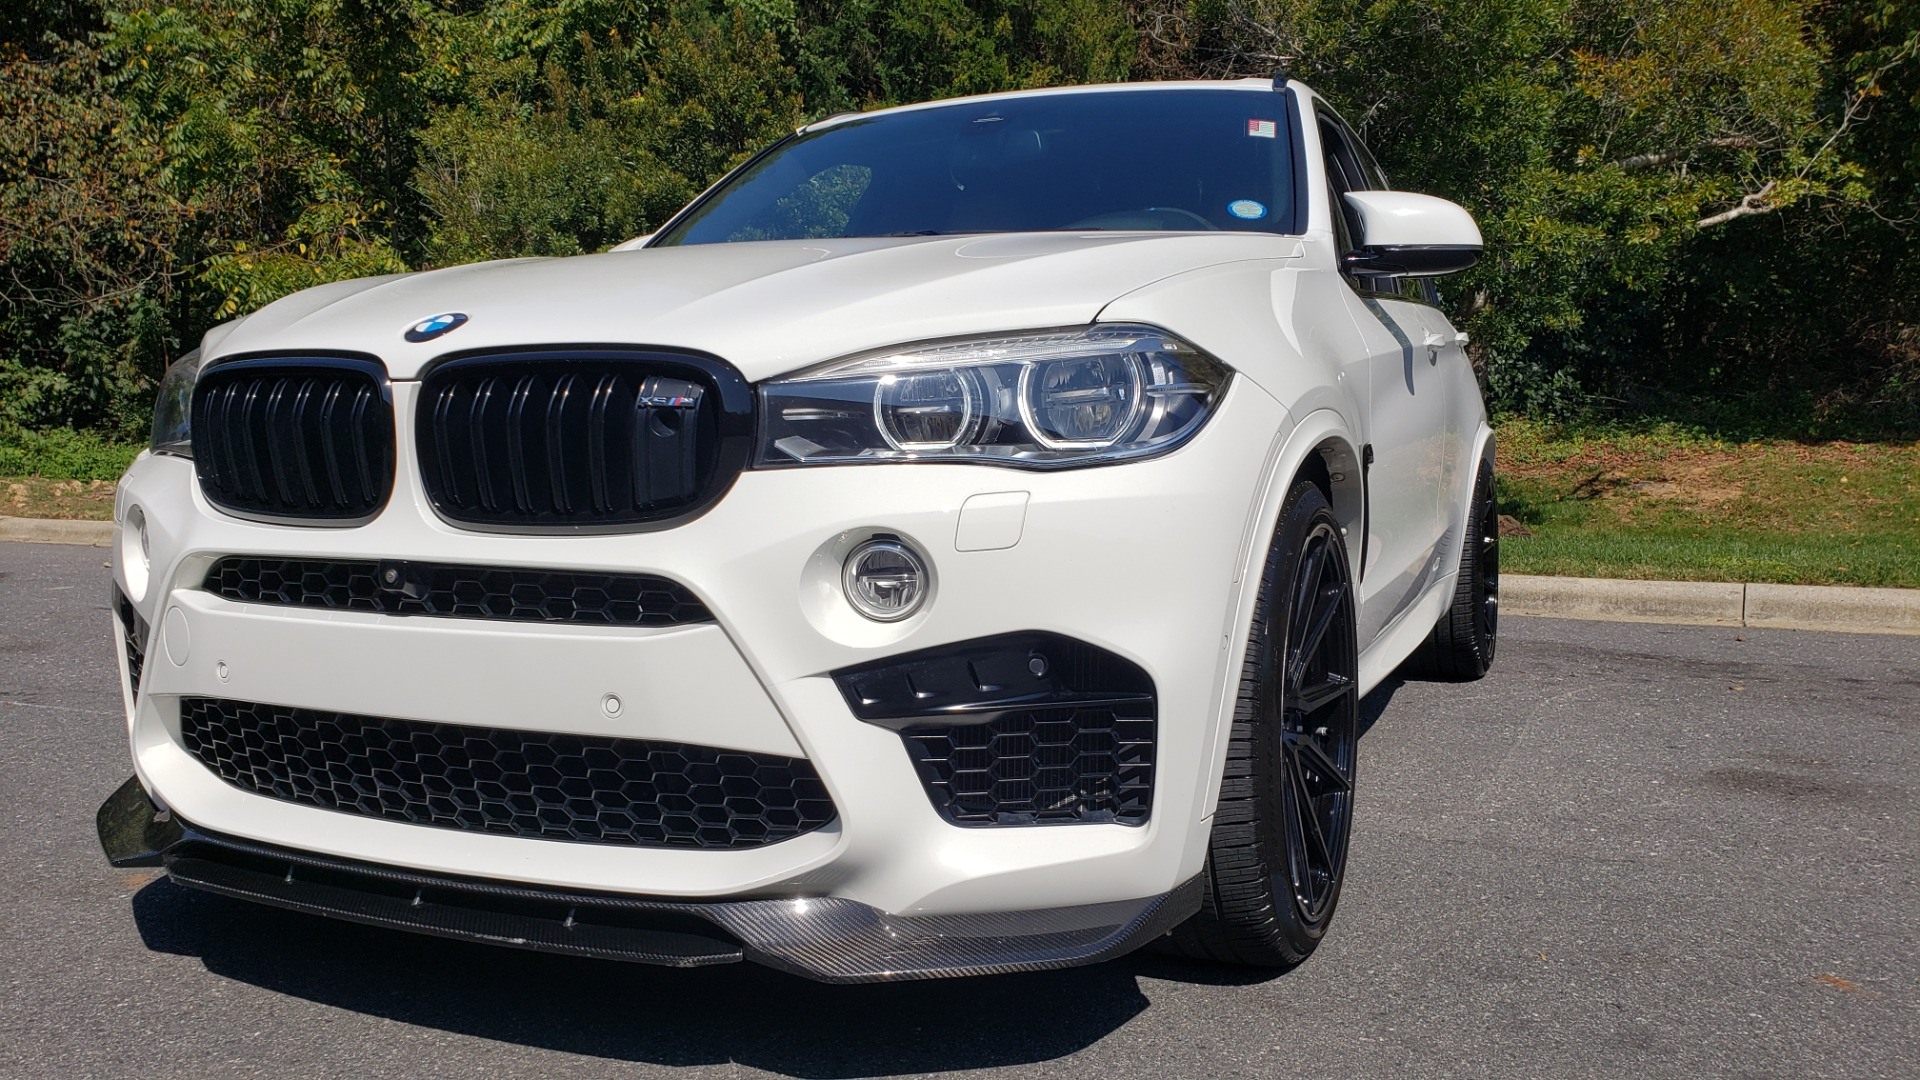 Used 2017 BMW X5 M SPORT / AWD / DRVR ASST / EXEC PKG / B&O SND / NIGHT VIS / PARK ASST for sale Sold at Formula Imports in Charlotte NC 28227 27